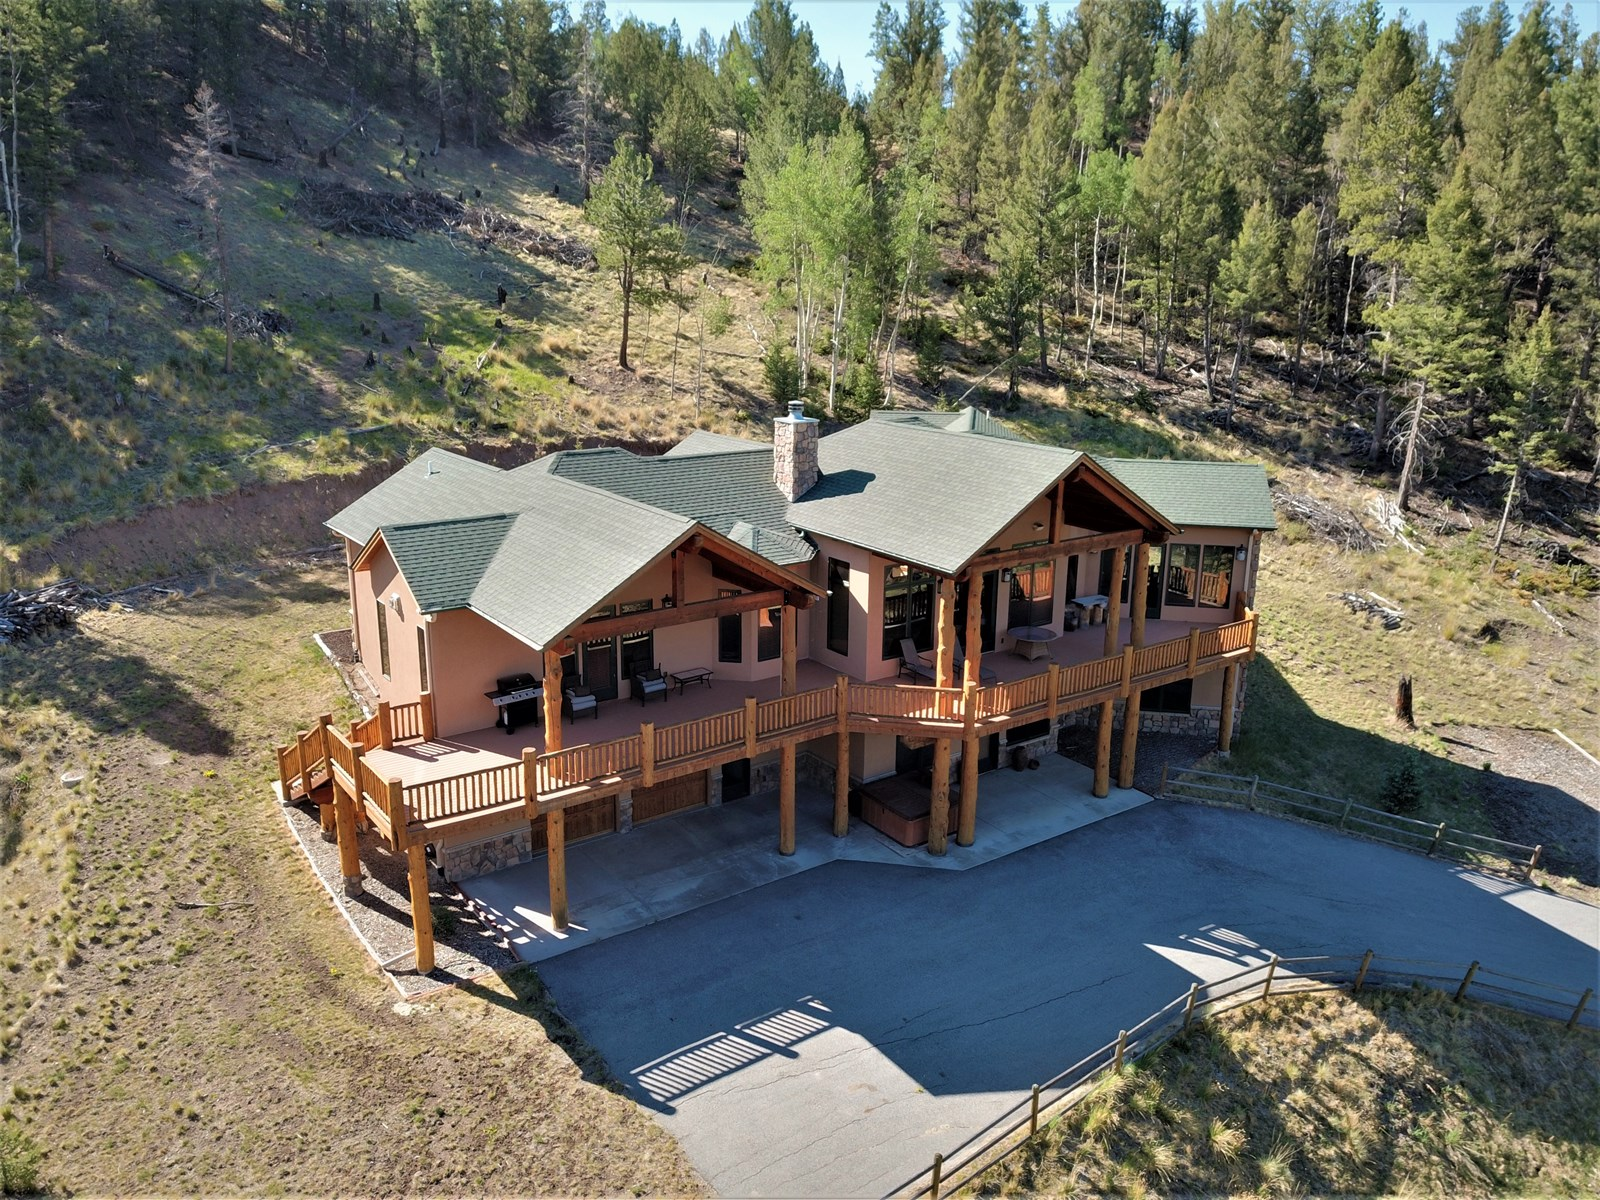 Custom Mountain Home For Sale w/60 Acres, Water & Views